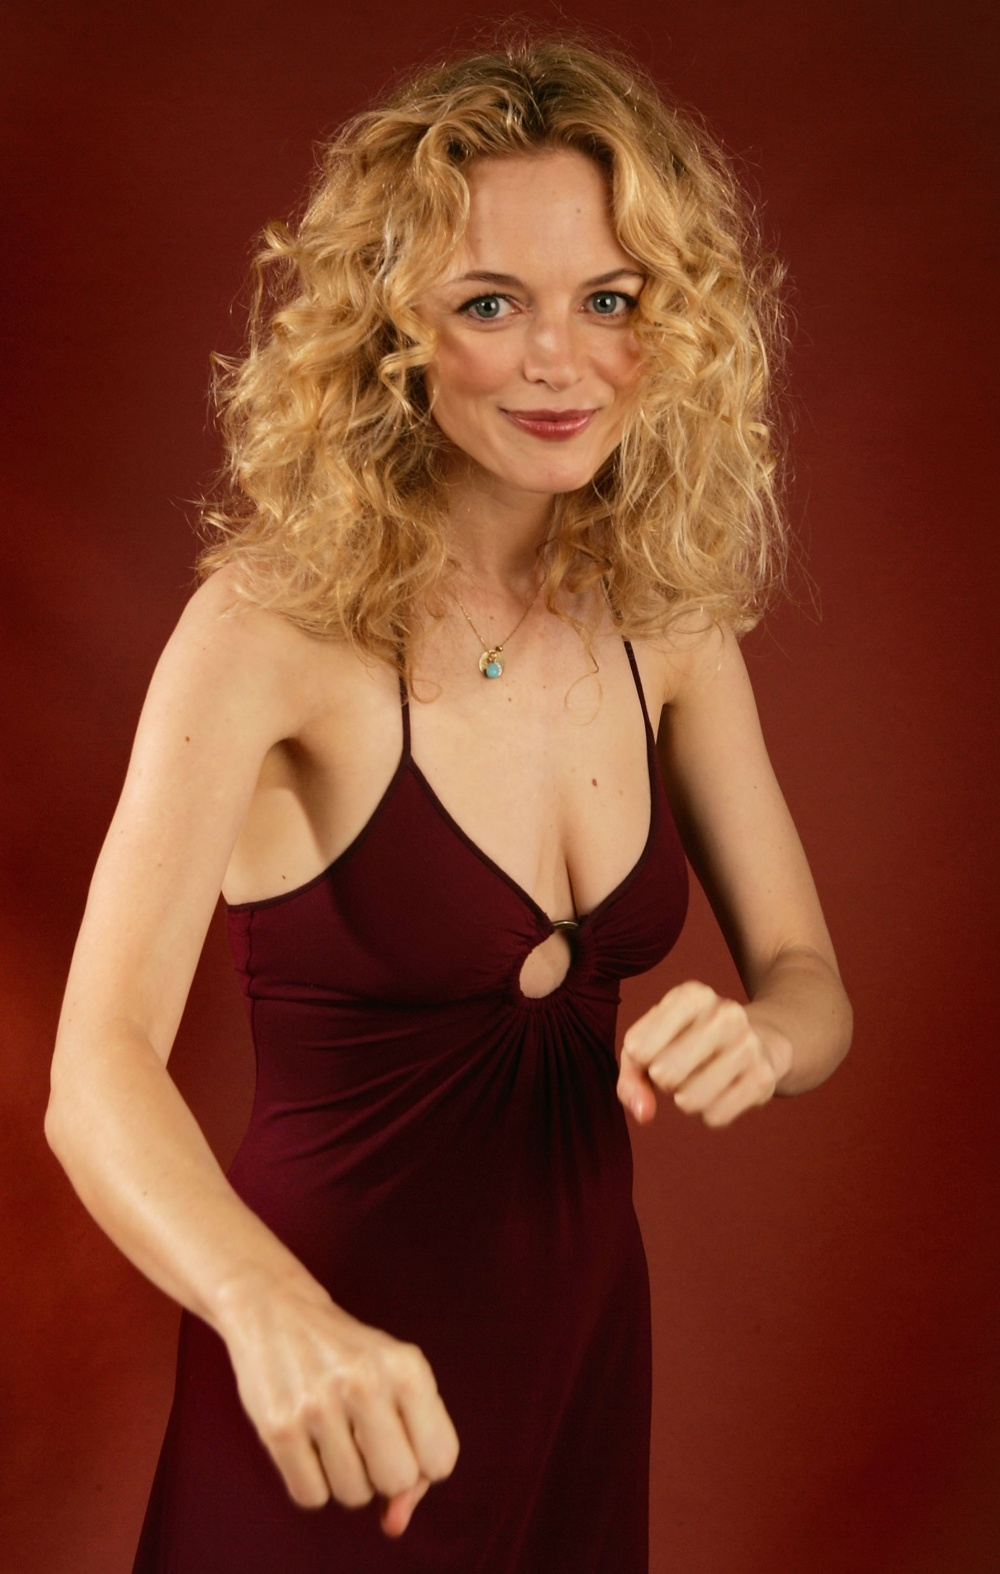 Хизер Грэм (Heather Graham)